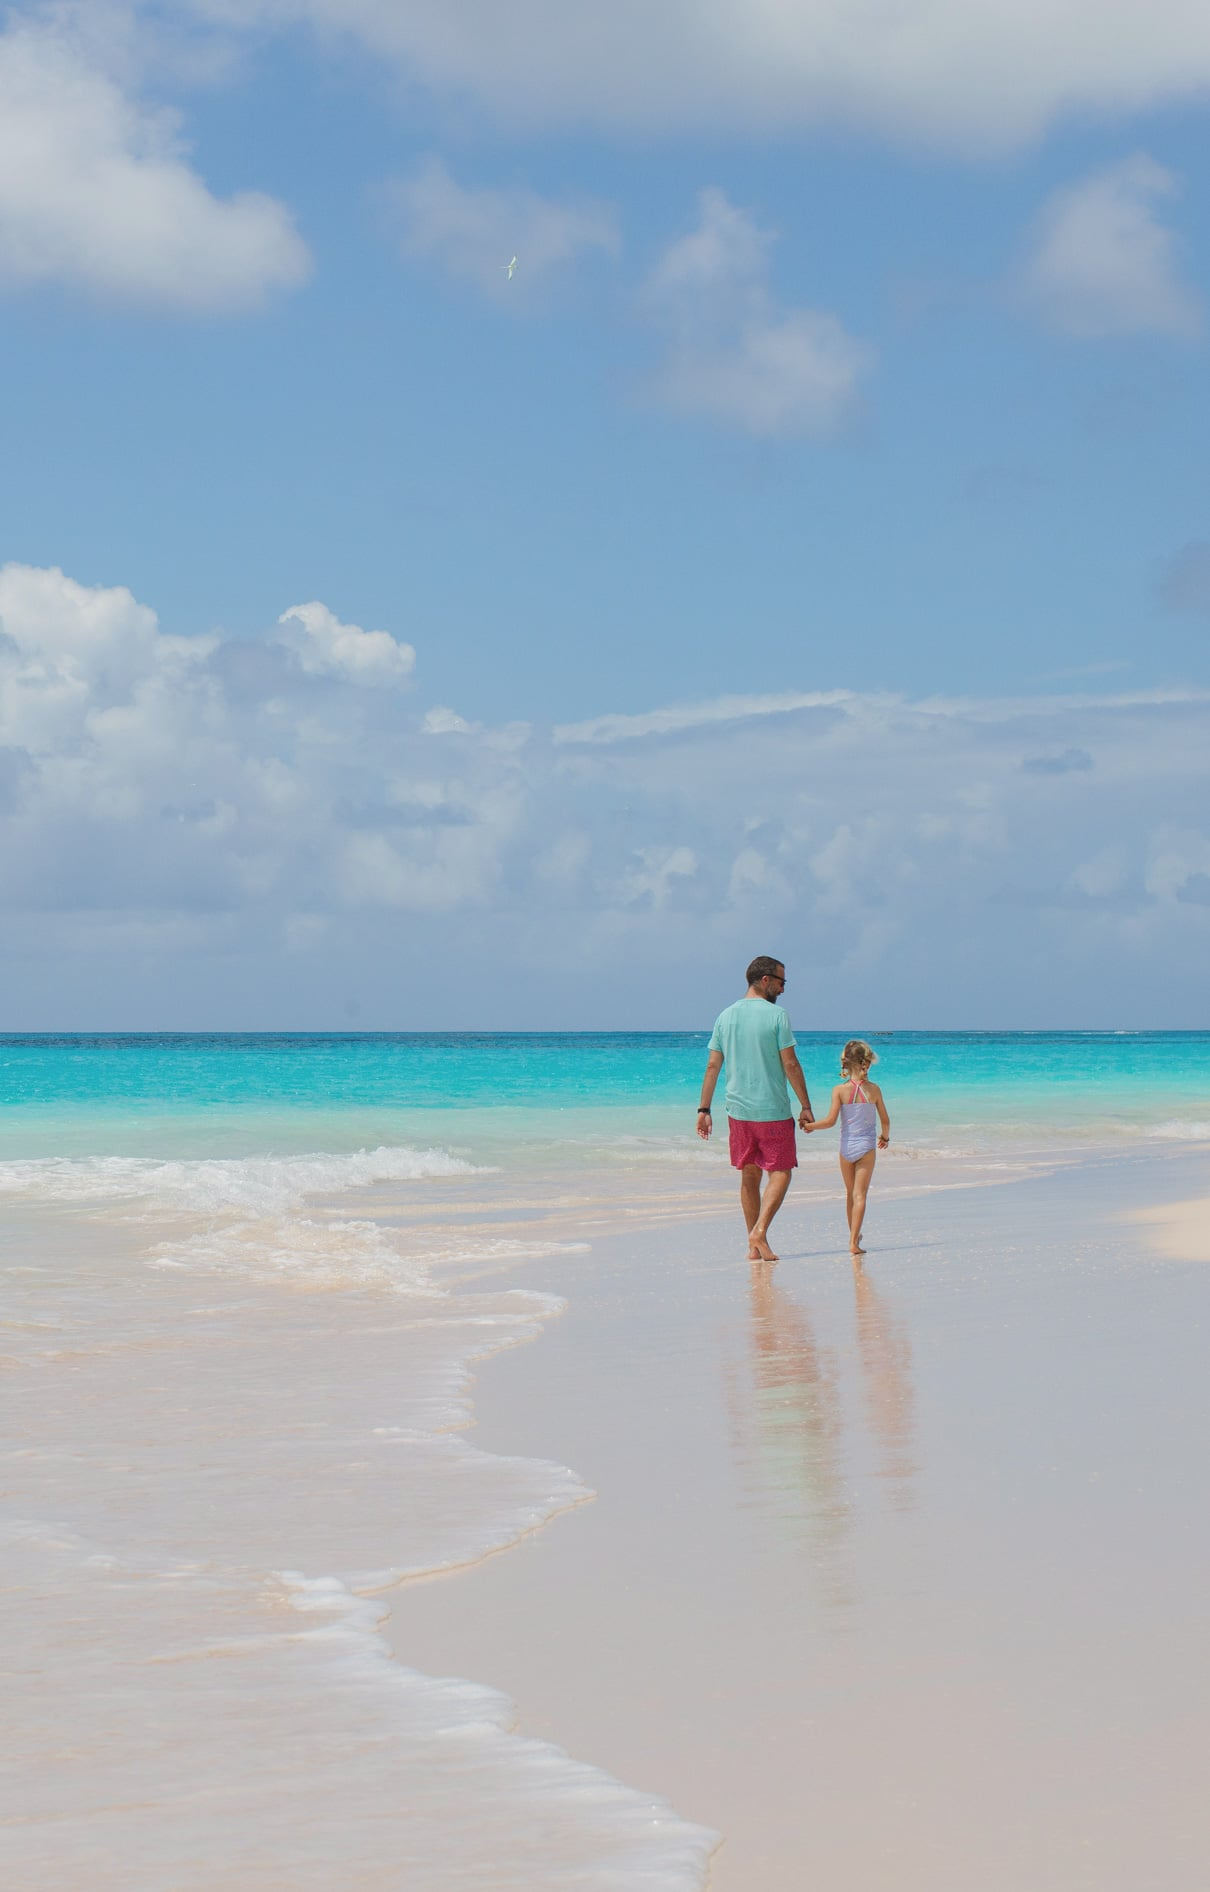 A child holding hands and walking on a beach with her father.